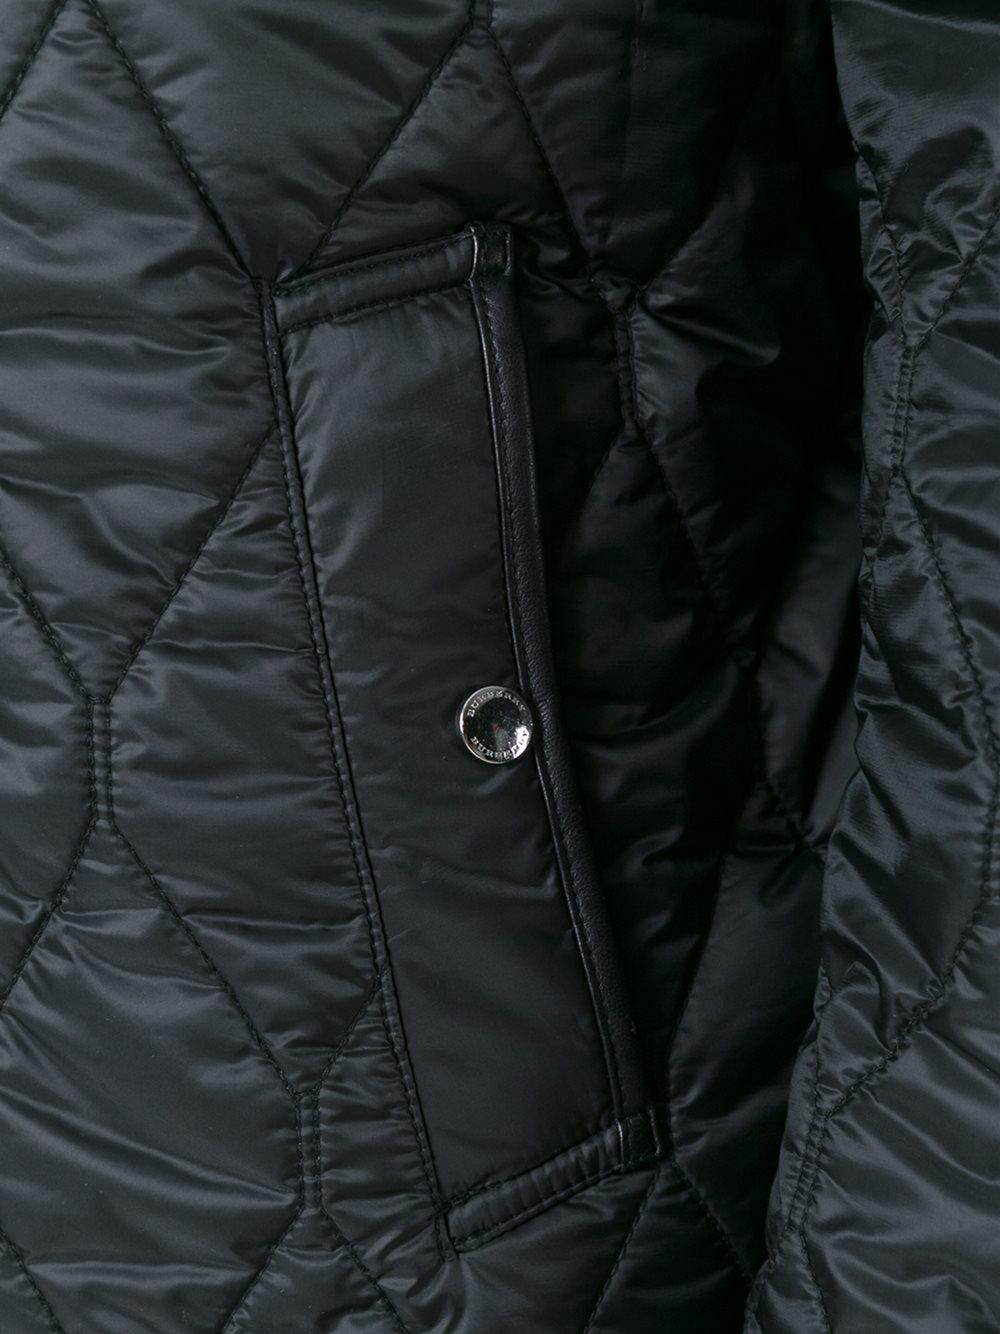 Burberry Cotton Quilted Zipped Jacket in Black for Men